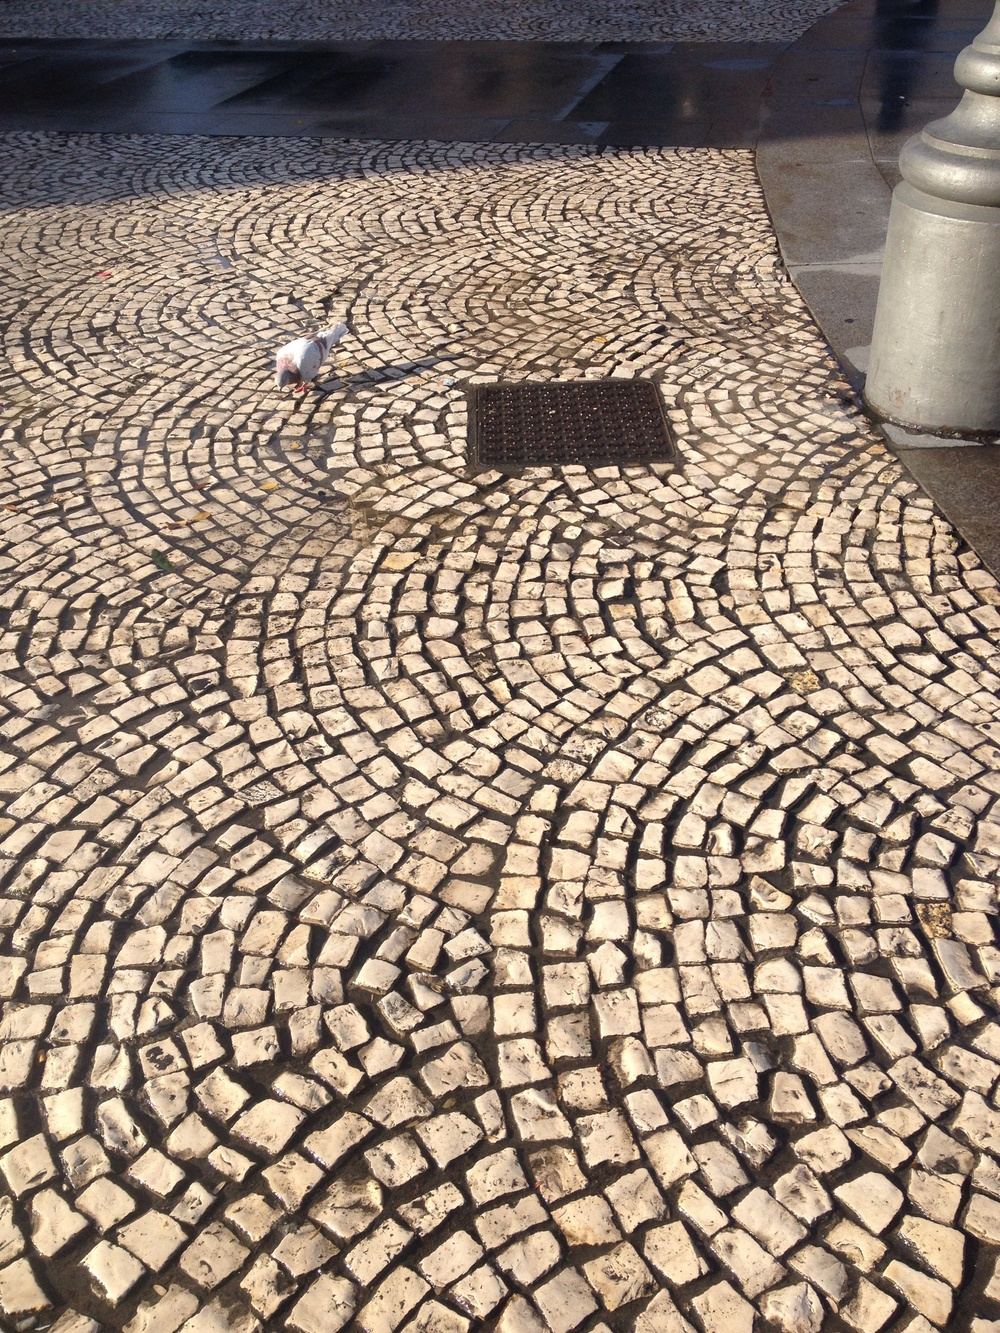 Ah, the pattern of these stones in the plaza near my house are mesmerizing.